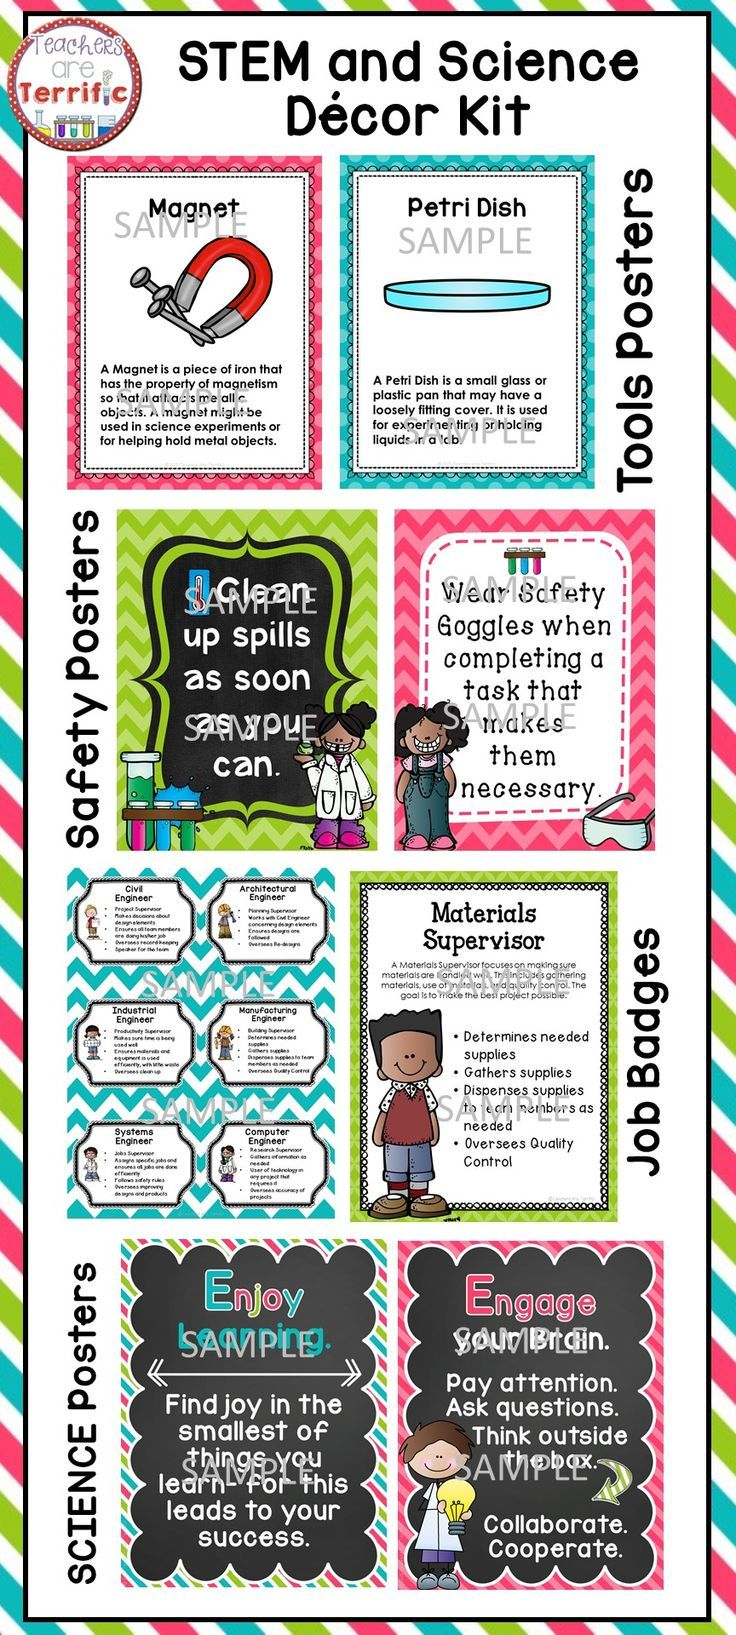 E safety poster designs - Decorating Kit In Pink Lime And Teal Include Safety Posters Lab Tools